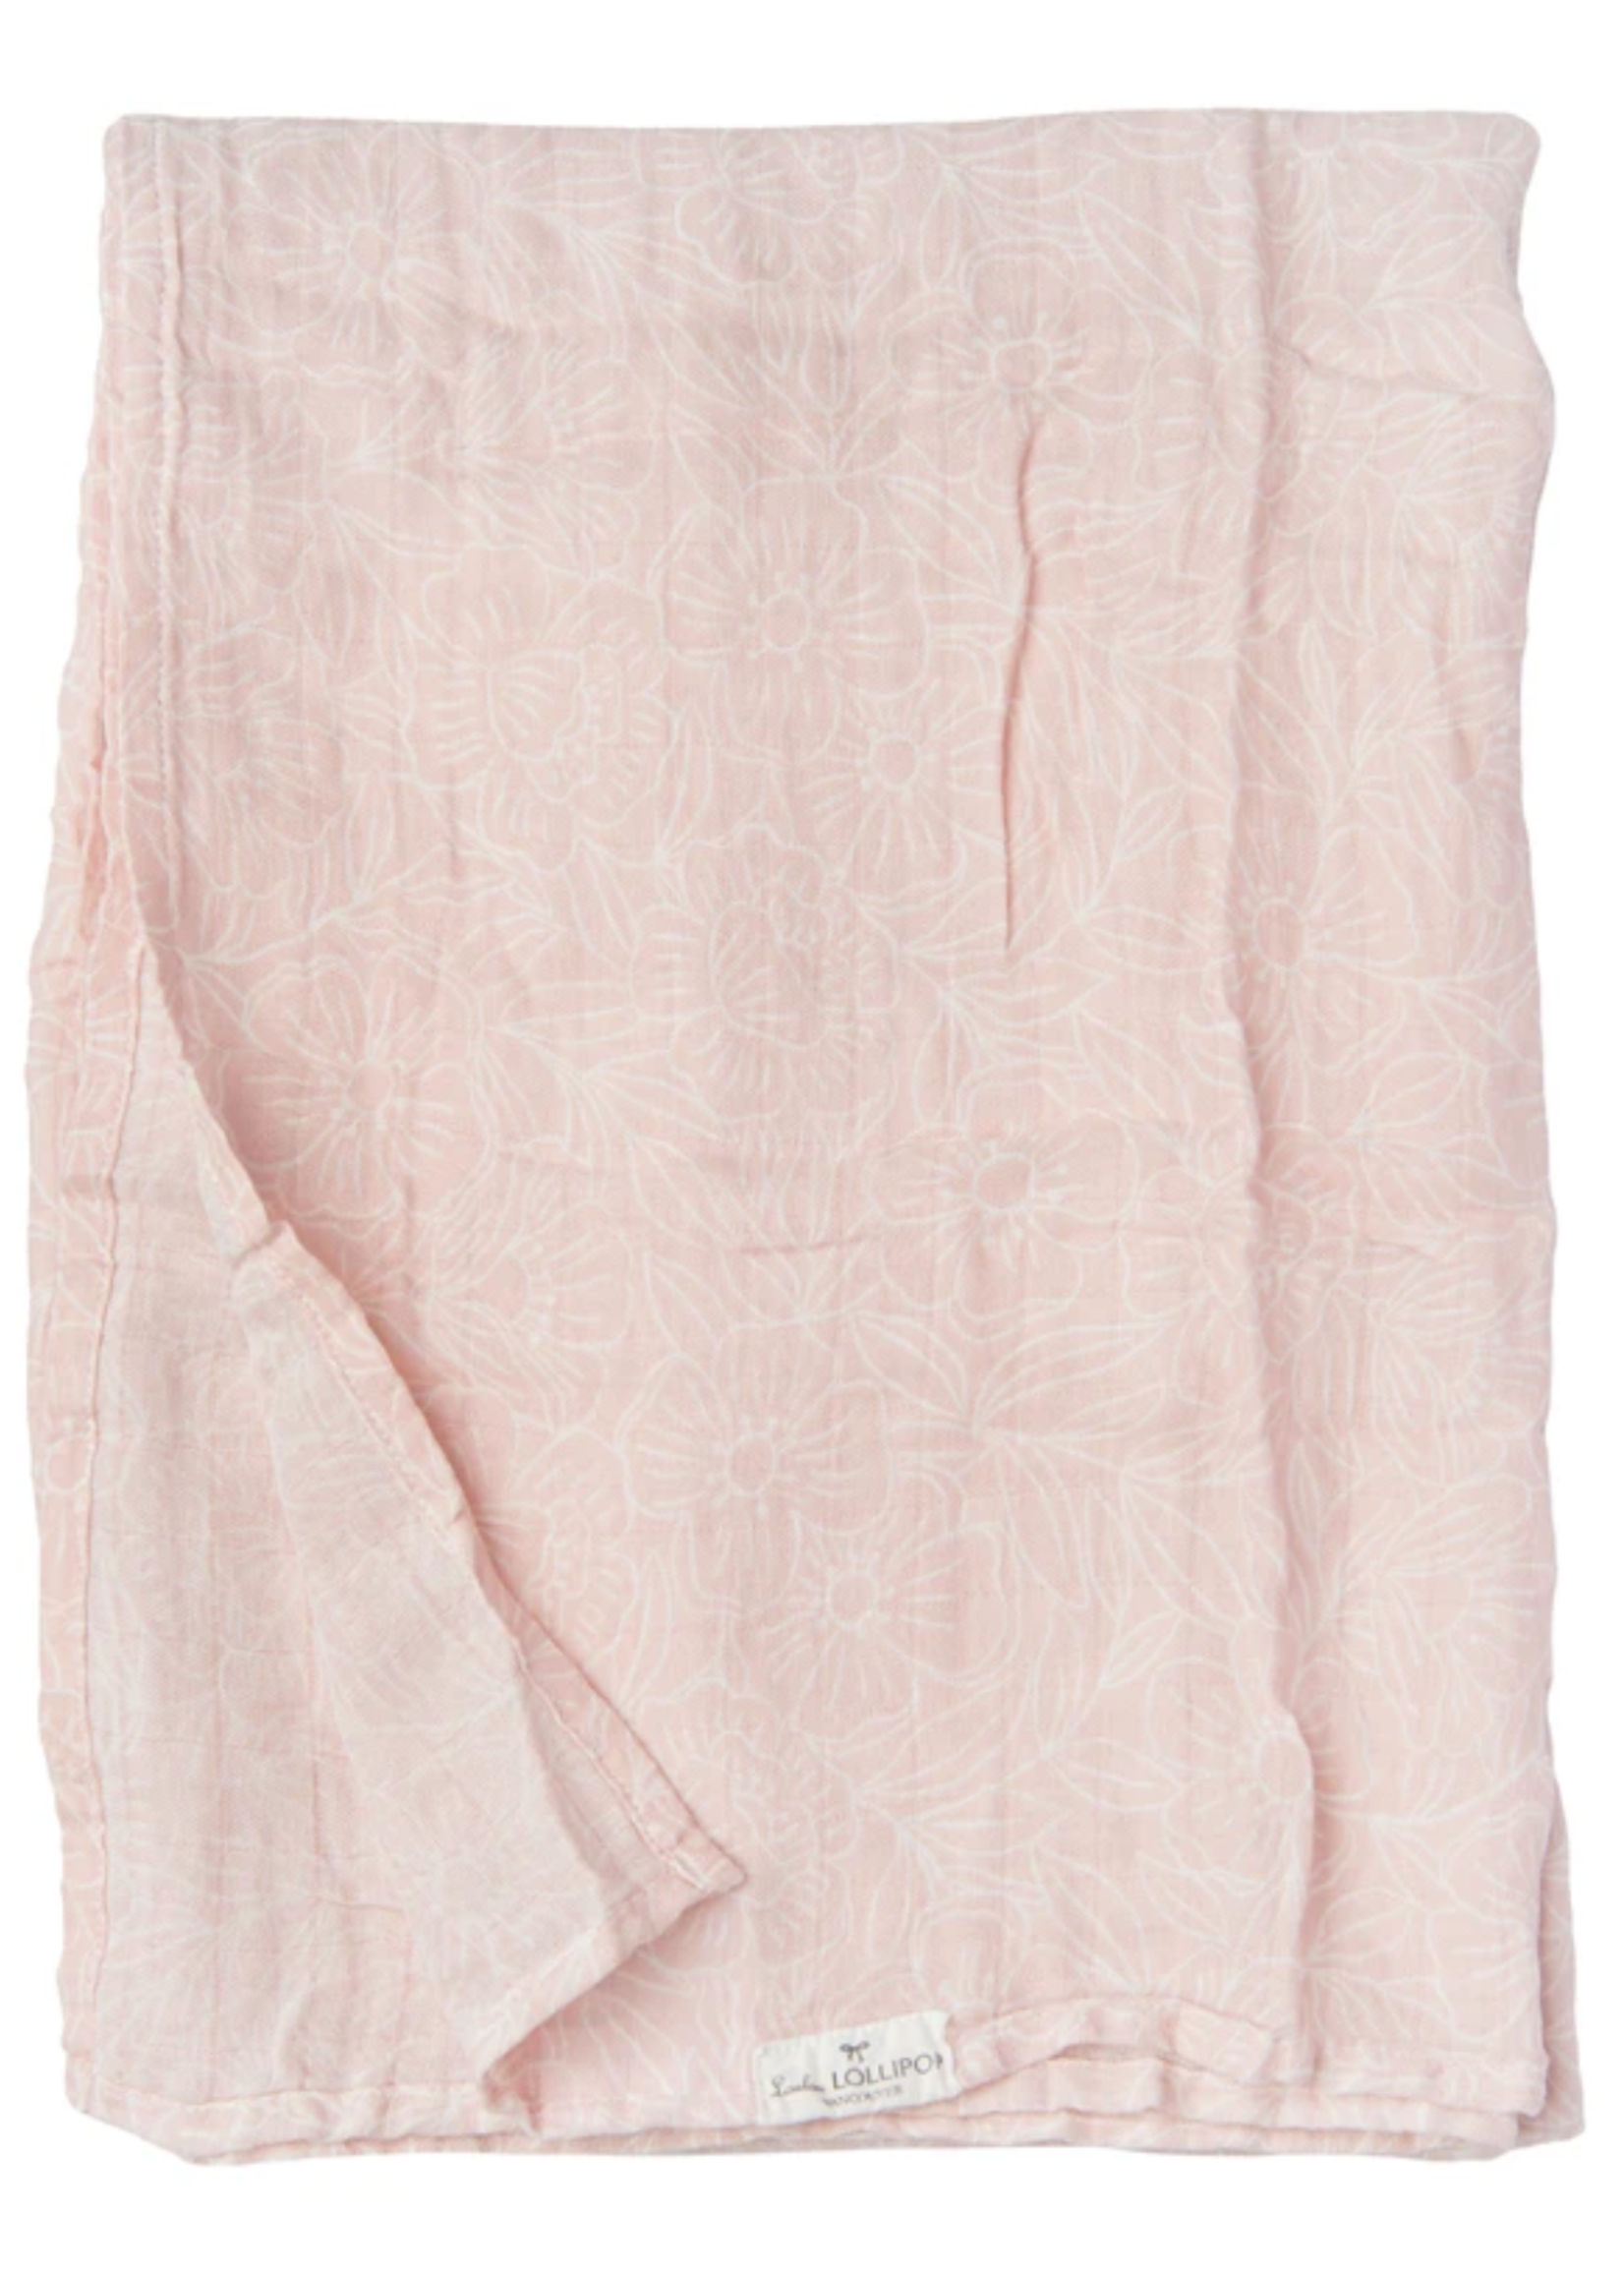 Elitaire Petite Muslin Swaddle - Sepia Rose Floral